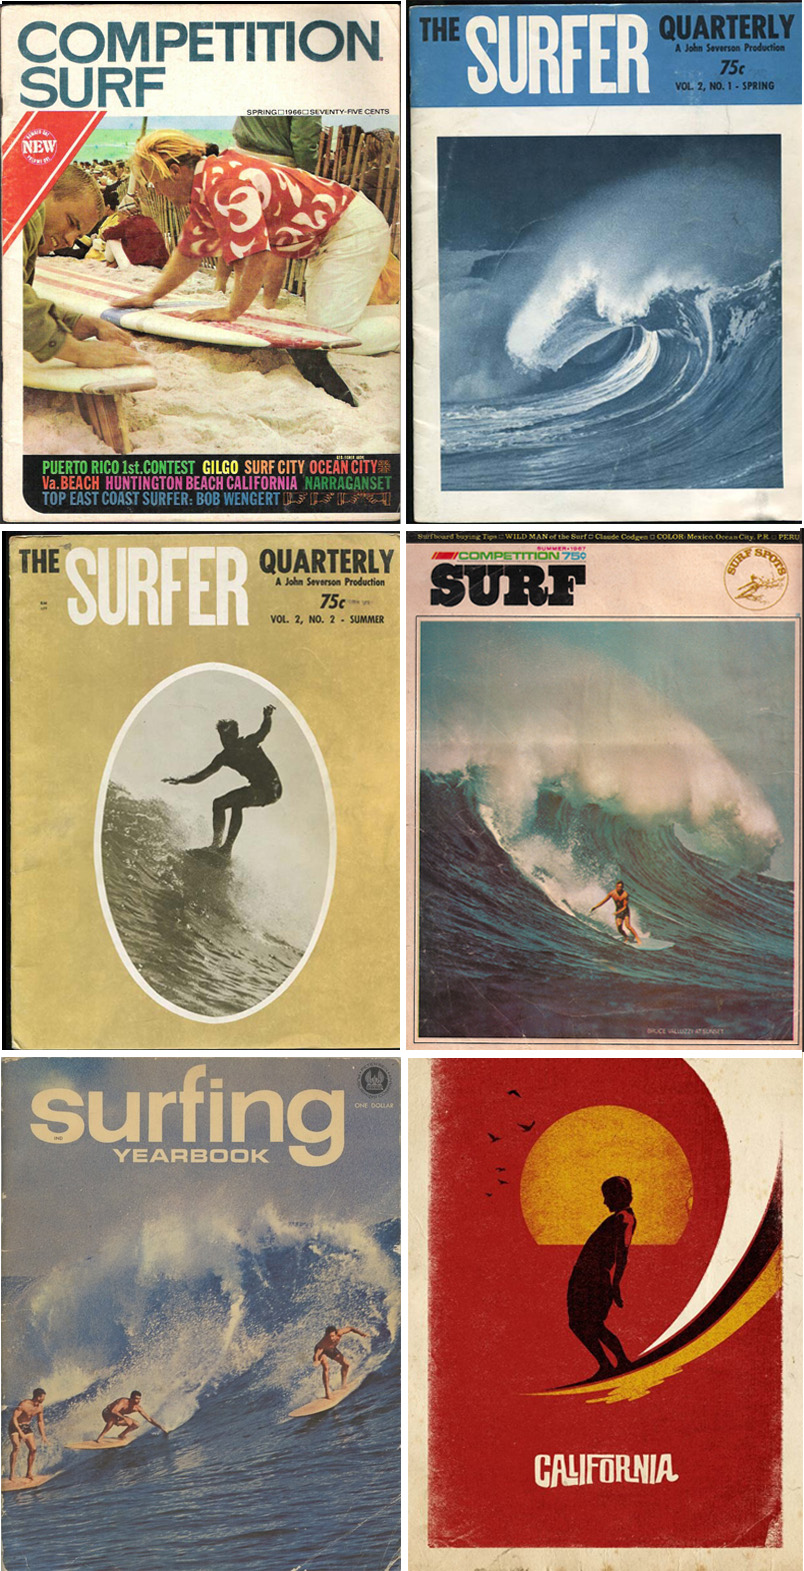 MMBB_SURFYSUNDAYS